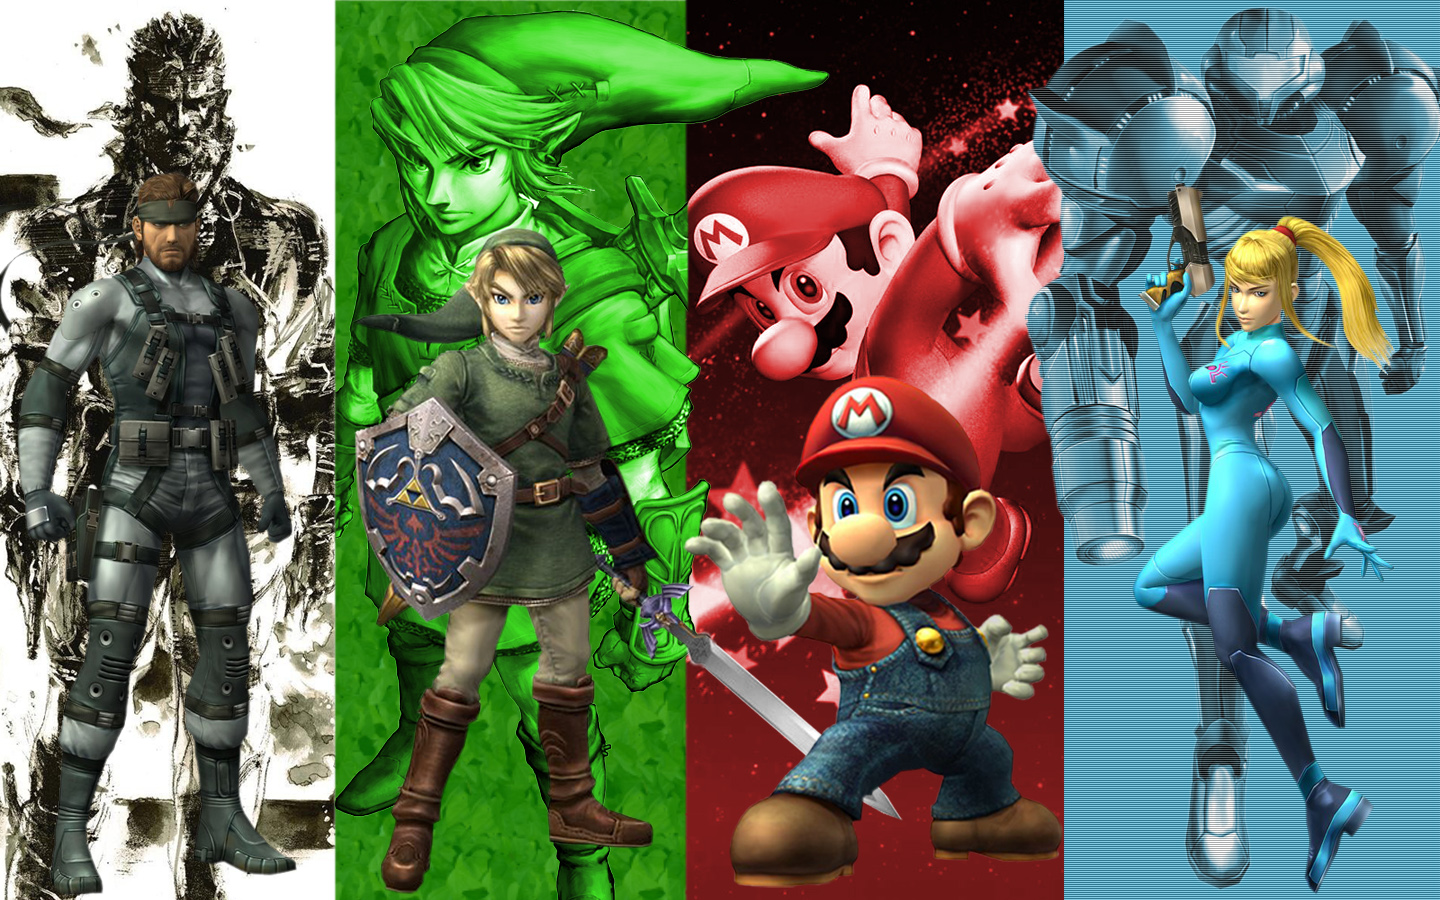 http://4.bp.blogspot.com/-rdfZtTGspHs/UAlD344Sv-I/AAAAAAAAByE/HsEThYP9jPg/s1600/super+smash+brothers+brawl+ssbb+wallpaper+background+solid+snake+link+mario+samus+aran+nintendo+game.jpg